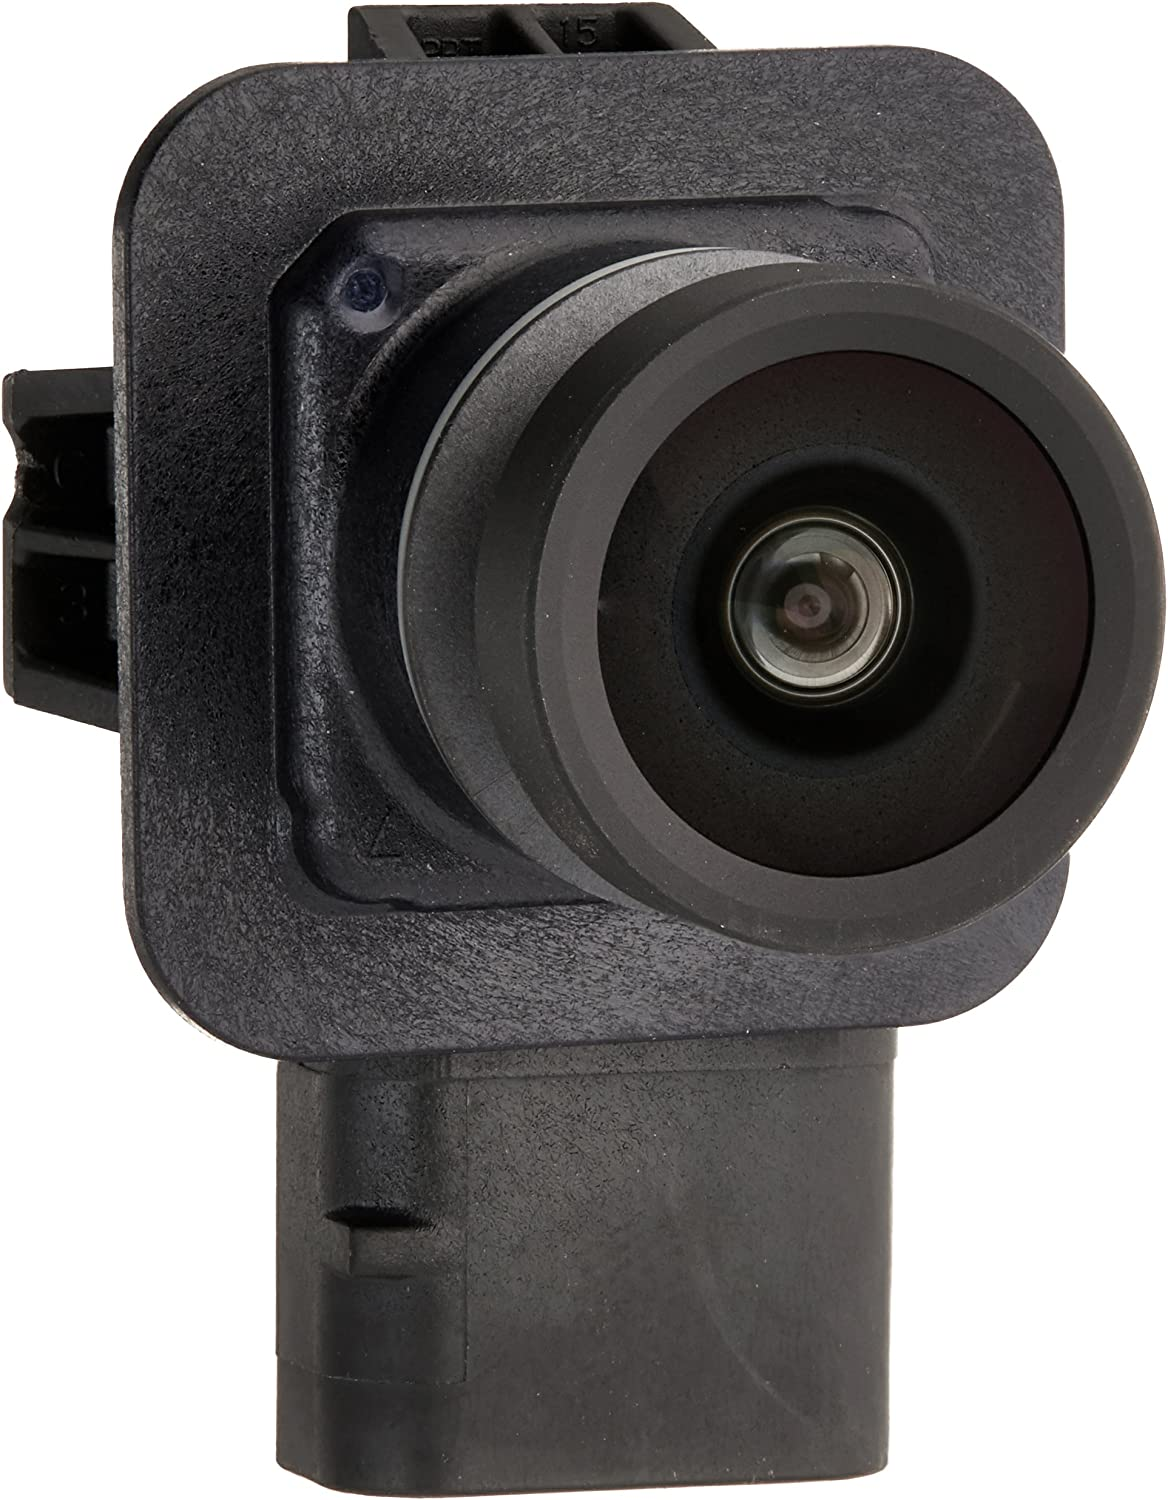 Ford BT4Z-19G490-B Back Up Rear Reverse Parking Camera